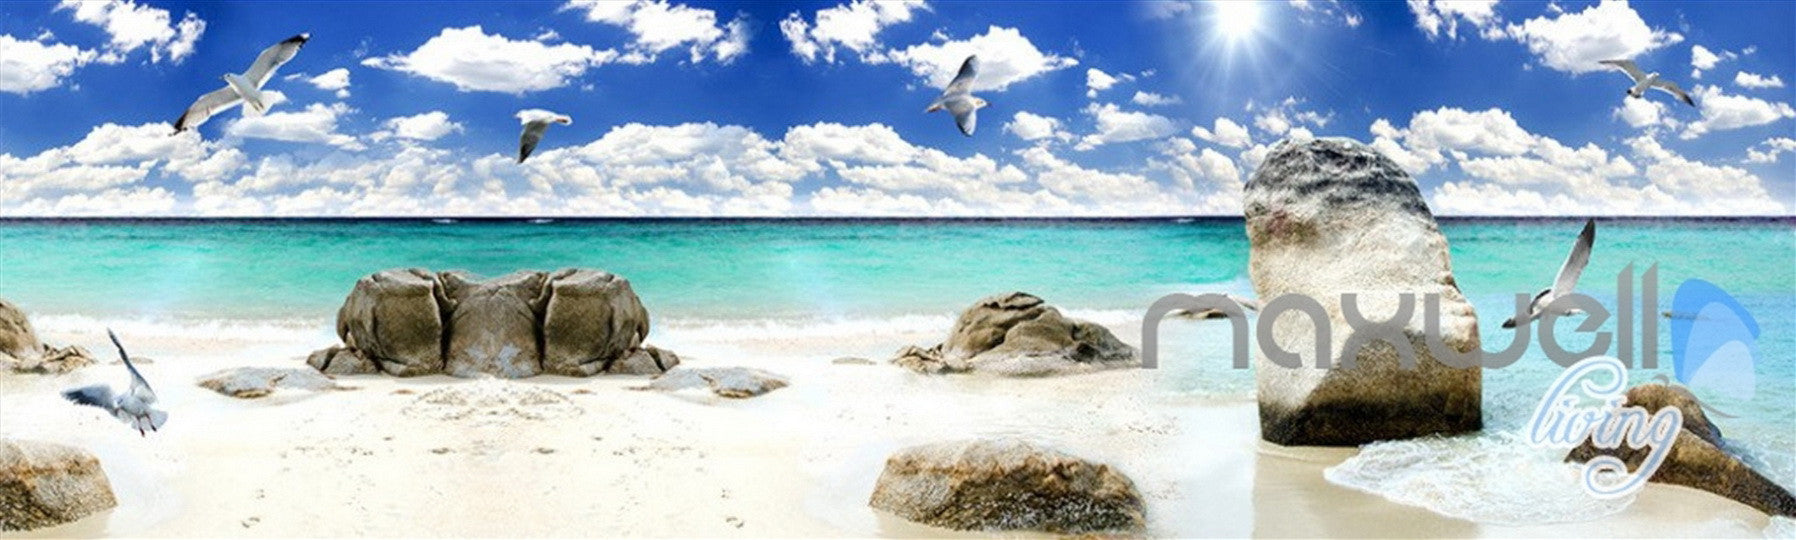 3d beach ocean seagull clouds sky ceiling entire living room wall 3d beach ocean seagull clouds sky ceiling entire living room wall mural art decor idcqw